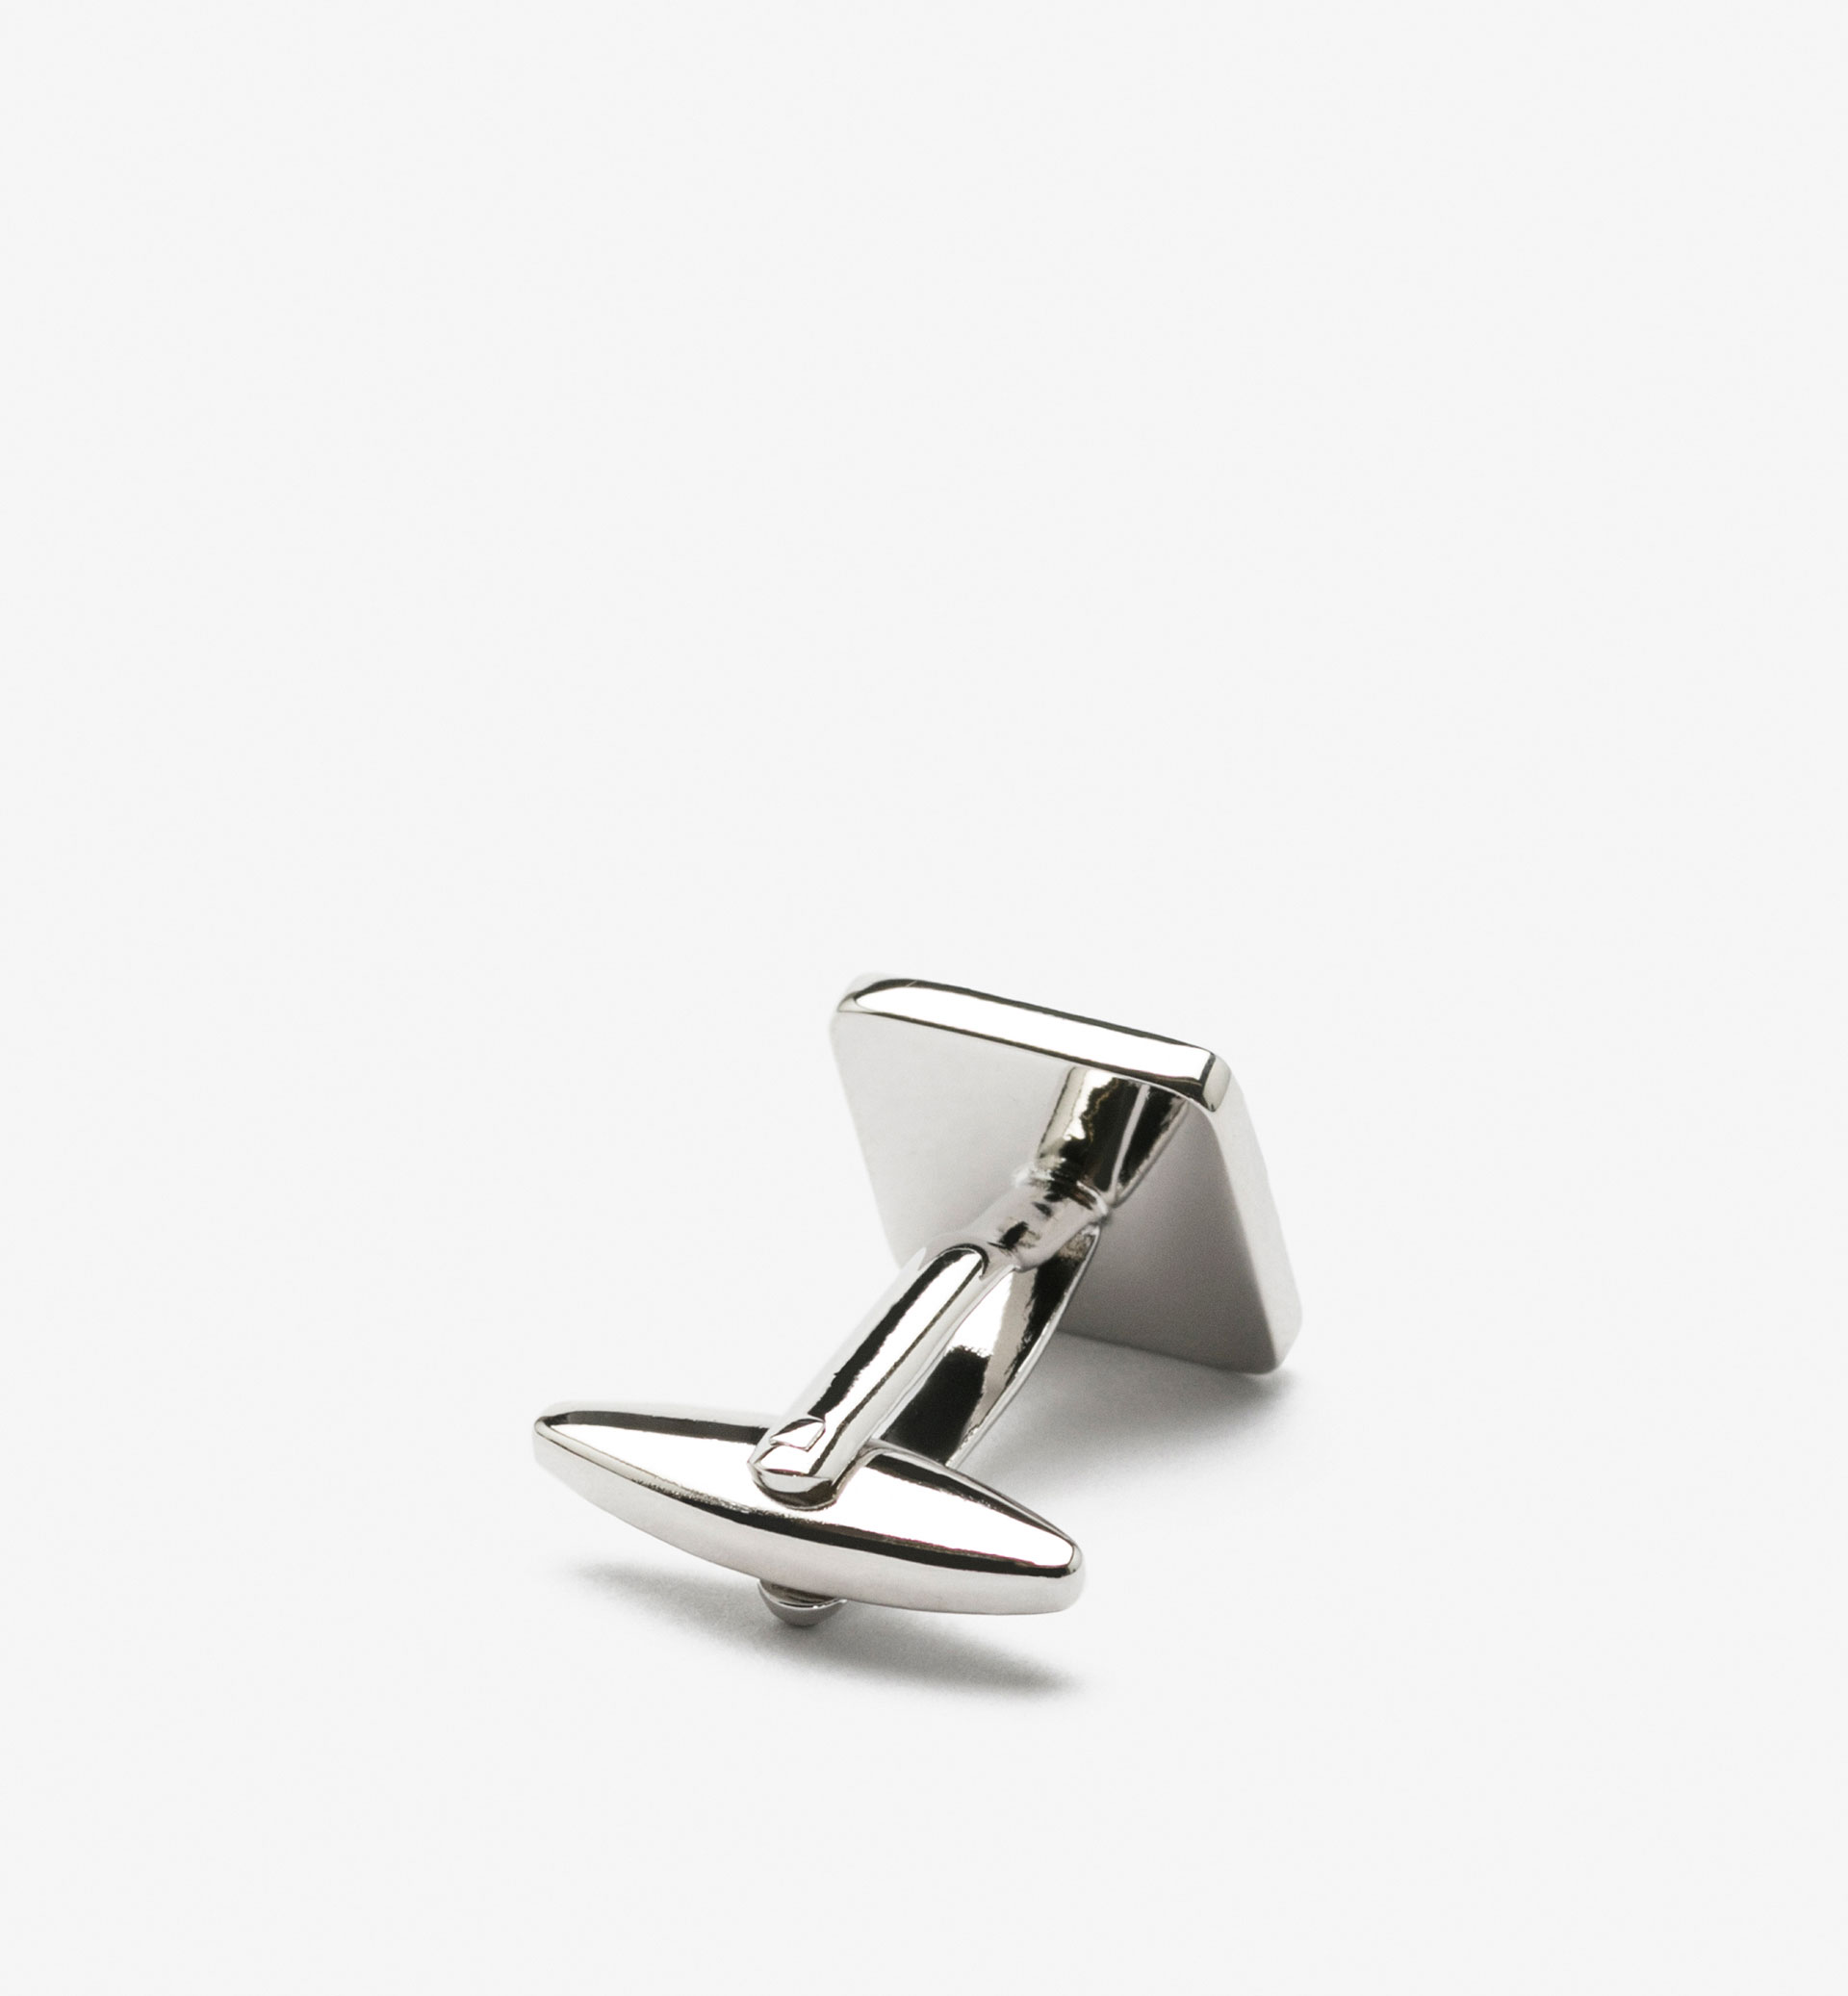 TEXTURED SQUARE CUT CUFFLINKS